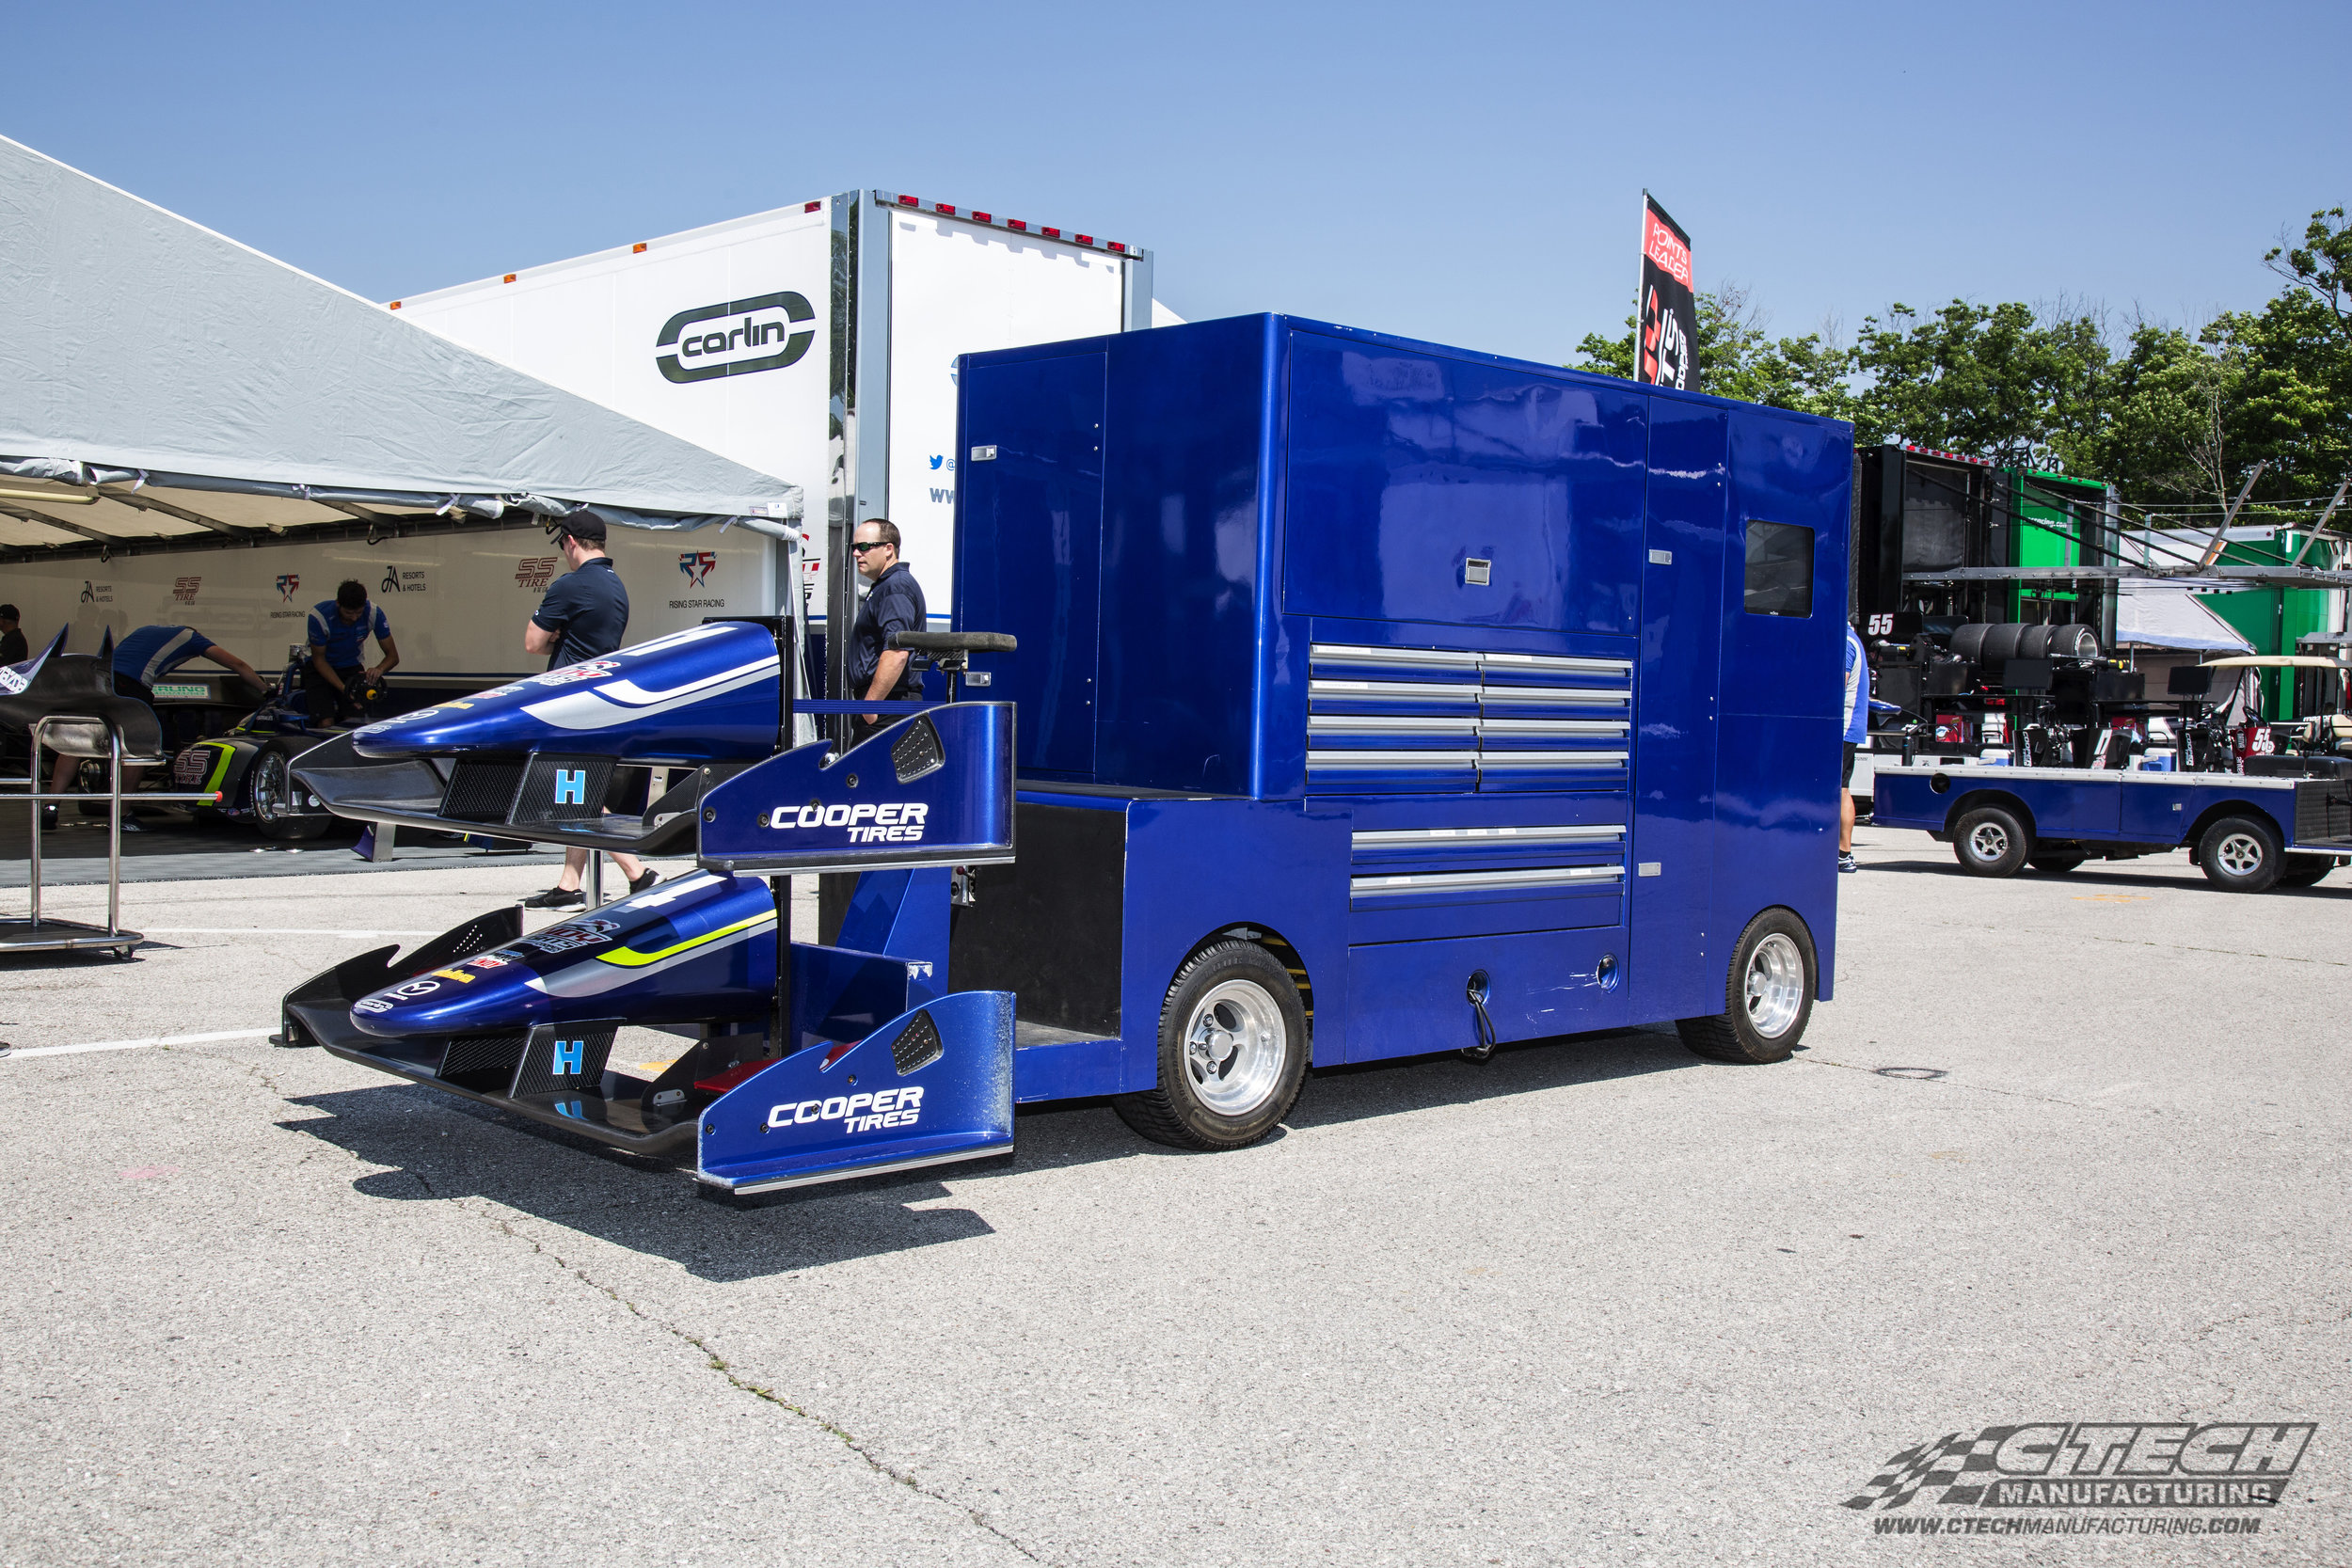 Even though this pit vehicle was built by someone else, Carlin Racing wanted CTech drawers inside of it! Why, because CTech drawer inserts are the best in the business!